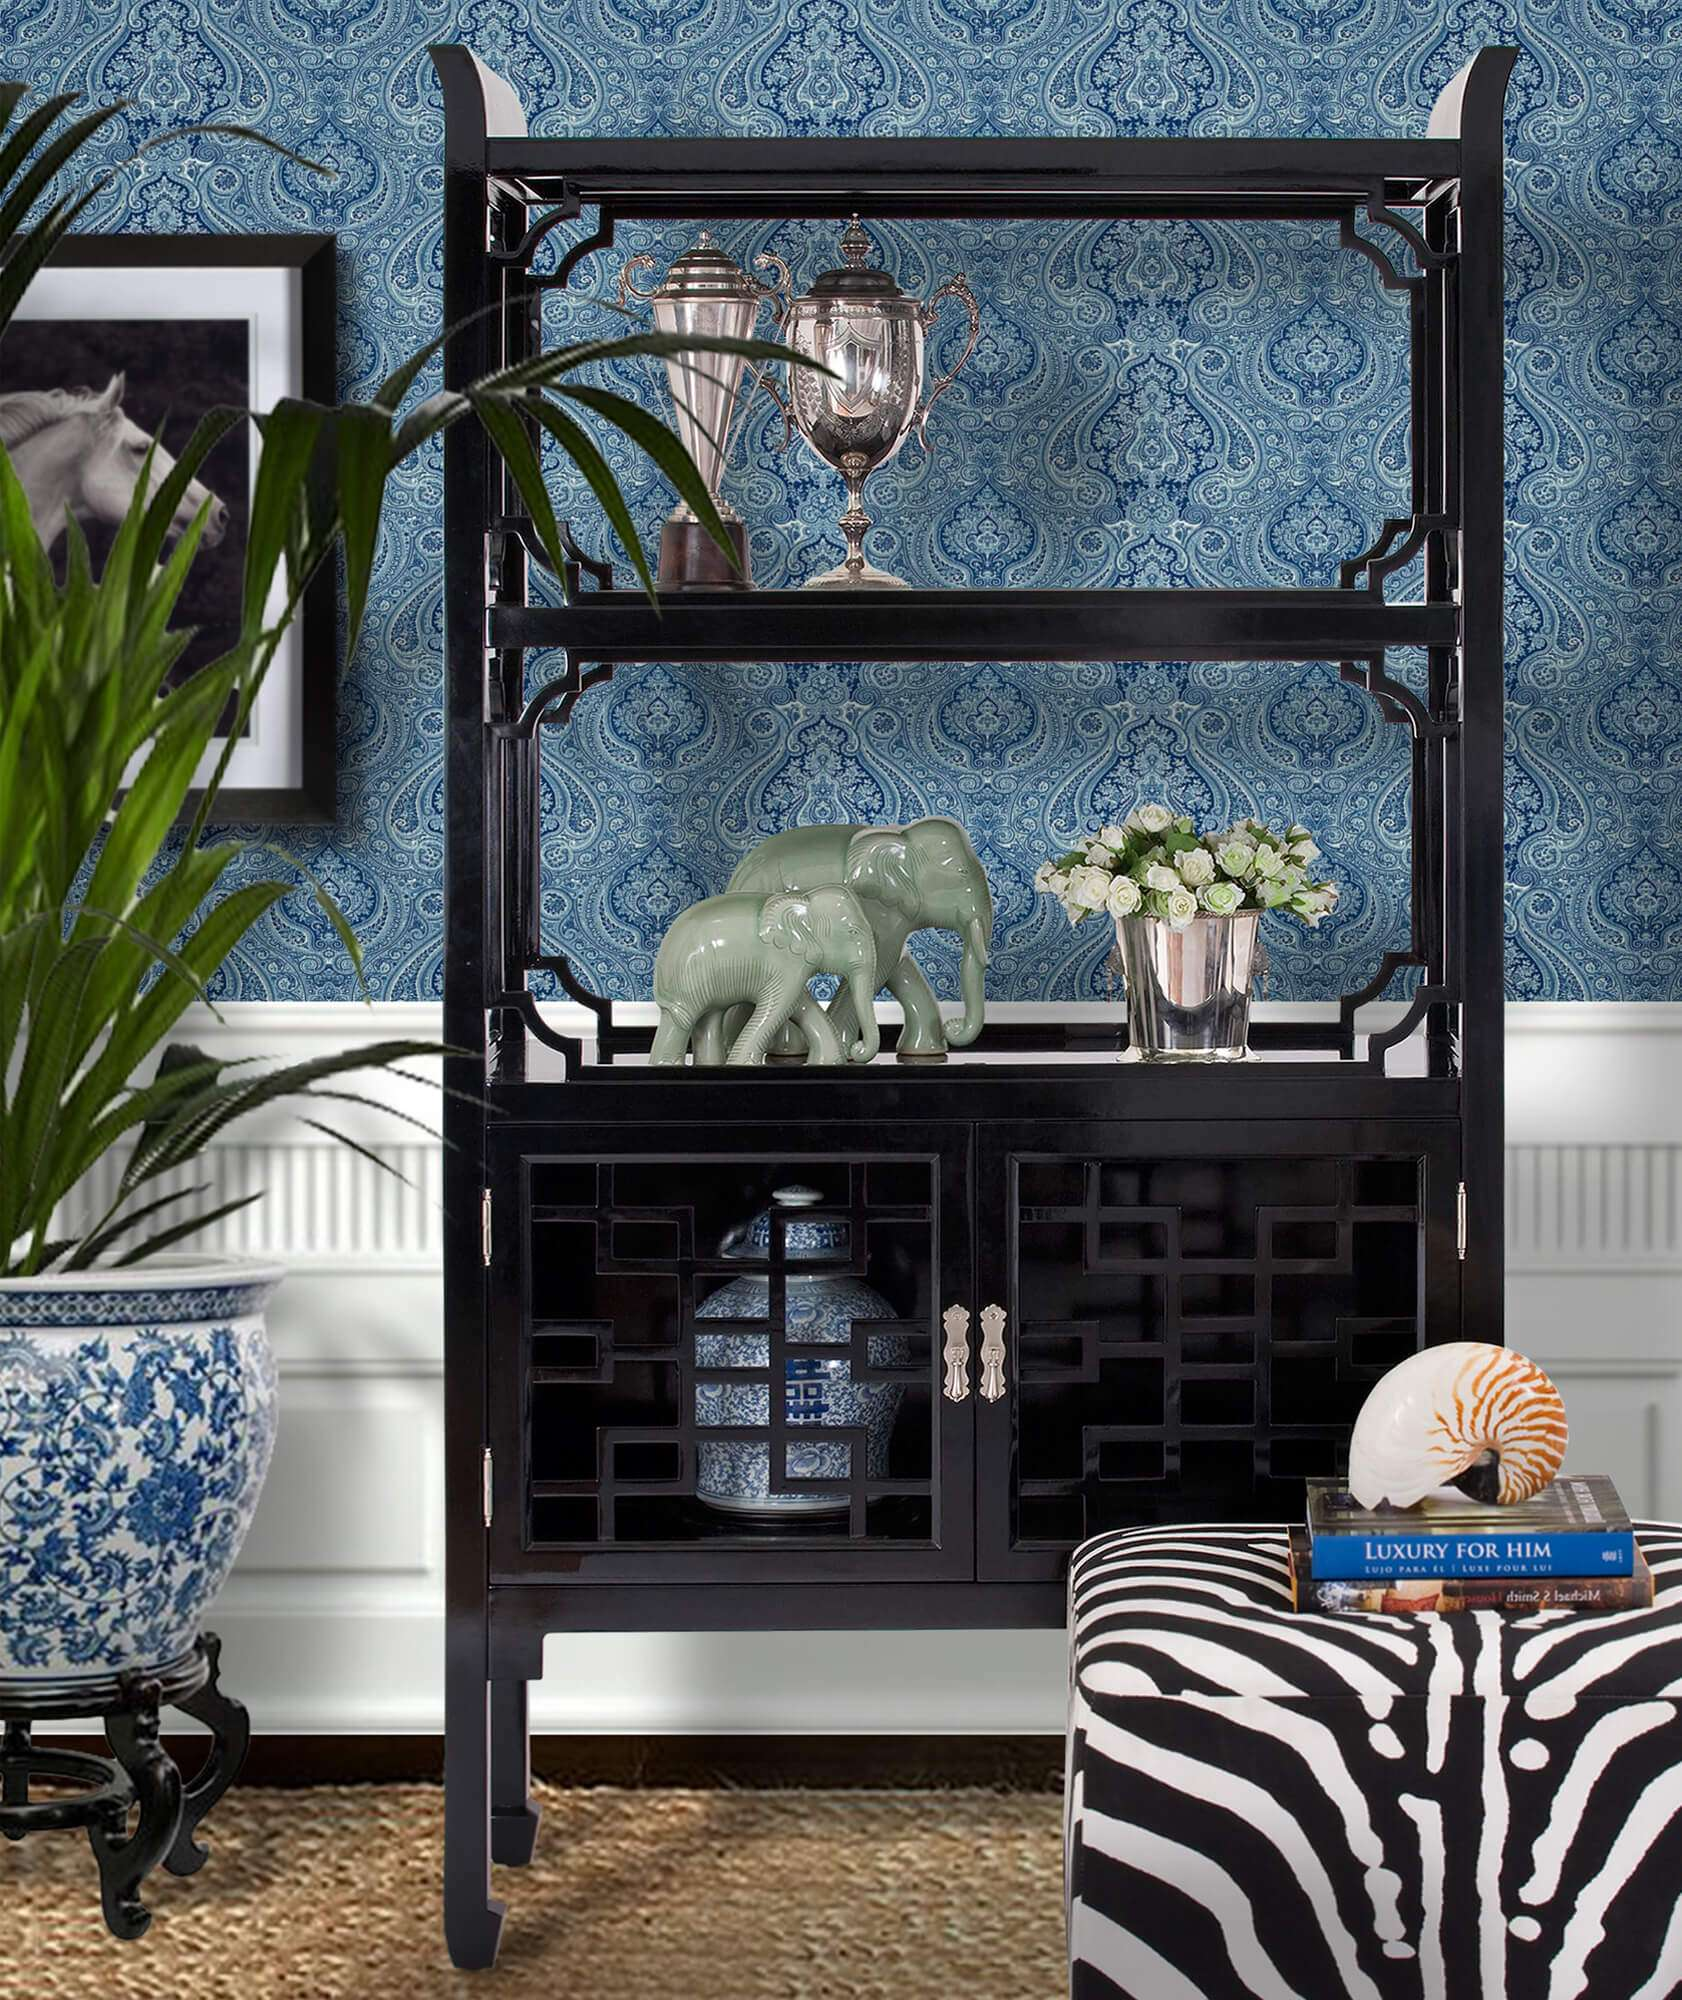 THE DYNASTY ETAGERE RIGHTHAND2 - STUART MEMBERY HOME COLLECTION